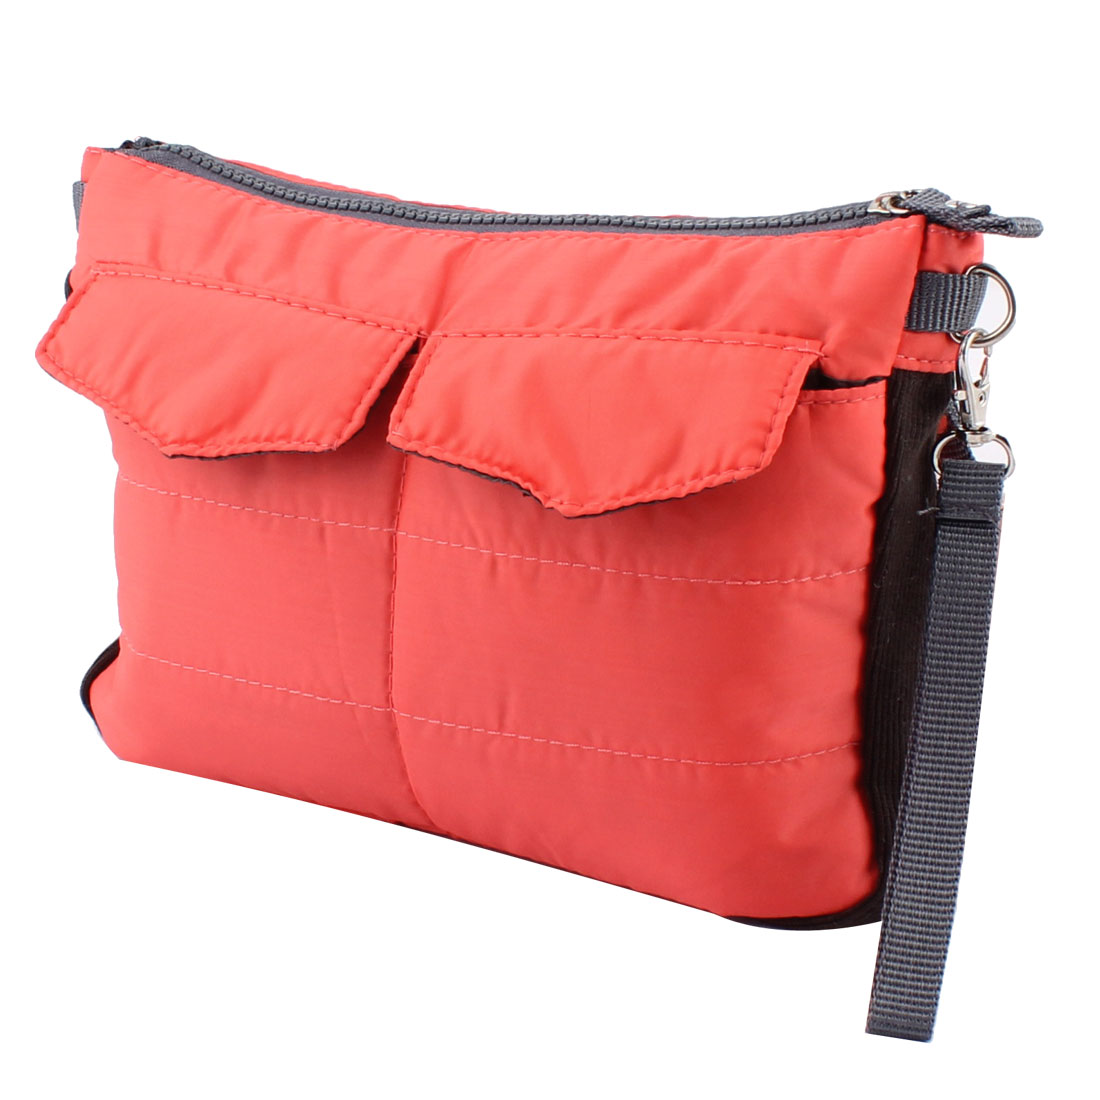 Orange Mini iPad Protective Sleeve Insert Handbag Gadget Pouch Organizer Storage Bag